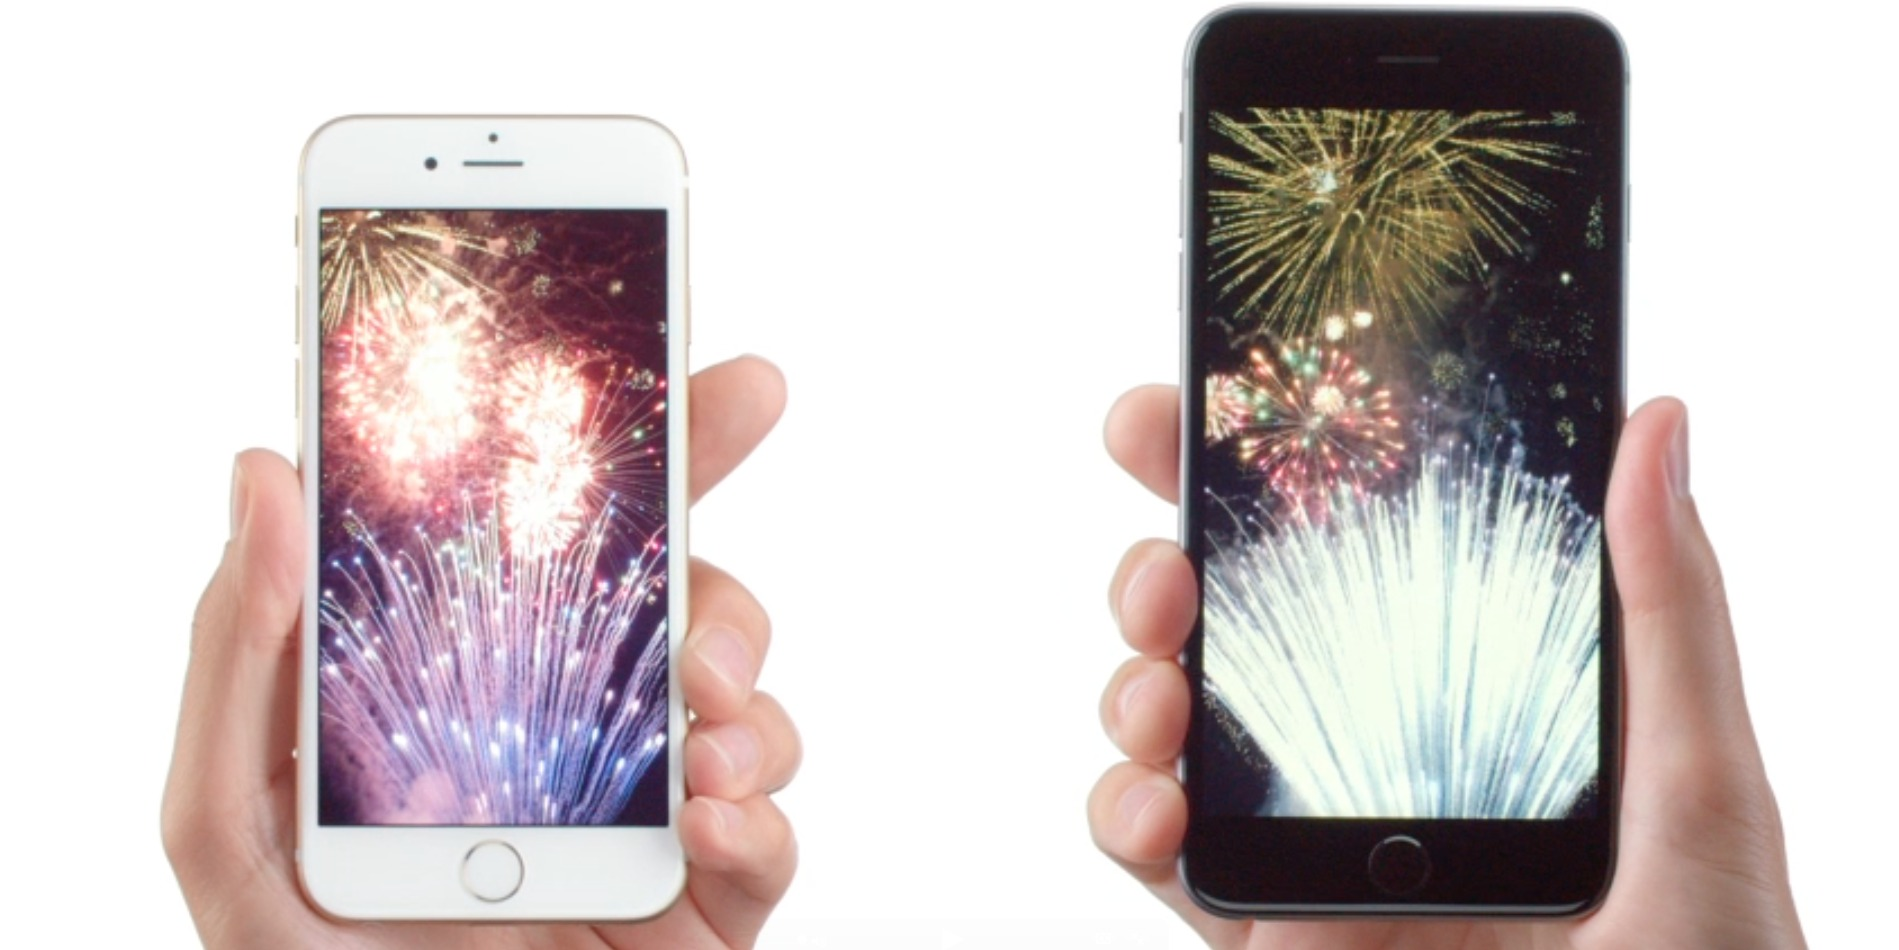 Download Ios 9 Live Wallpapers Iphone 6s 6s Plus: Moving Wallpaper IPhone 6s